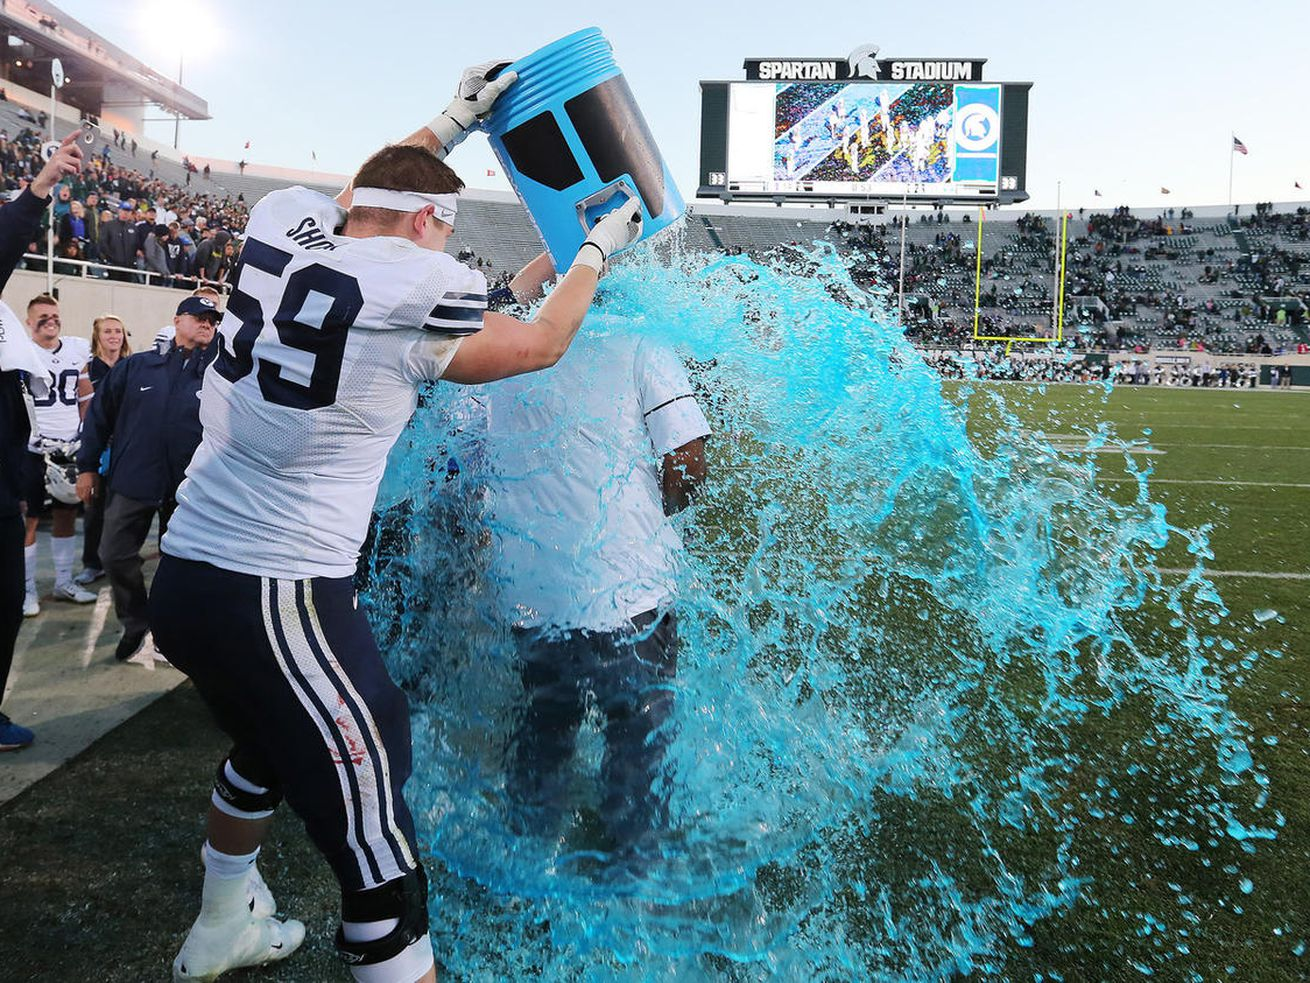 BYU head coach Kalani Sitake gets doused by Cougars offensive lineman Thomas Shoaf (59) during the BYU-Michigan State game in East Lansing, Mich., on Saturday, Oct. 8, 2016. BYU won 31-14.